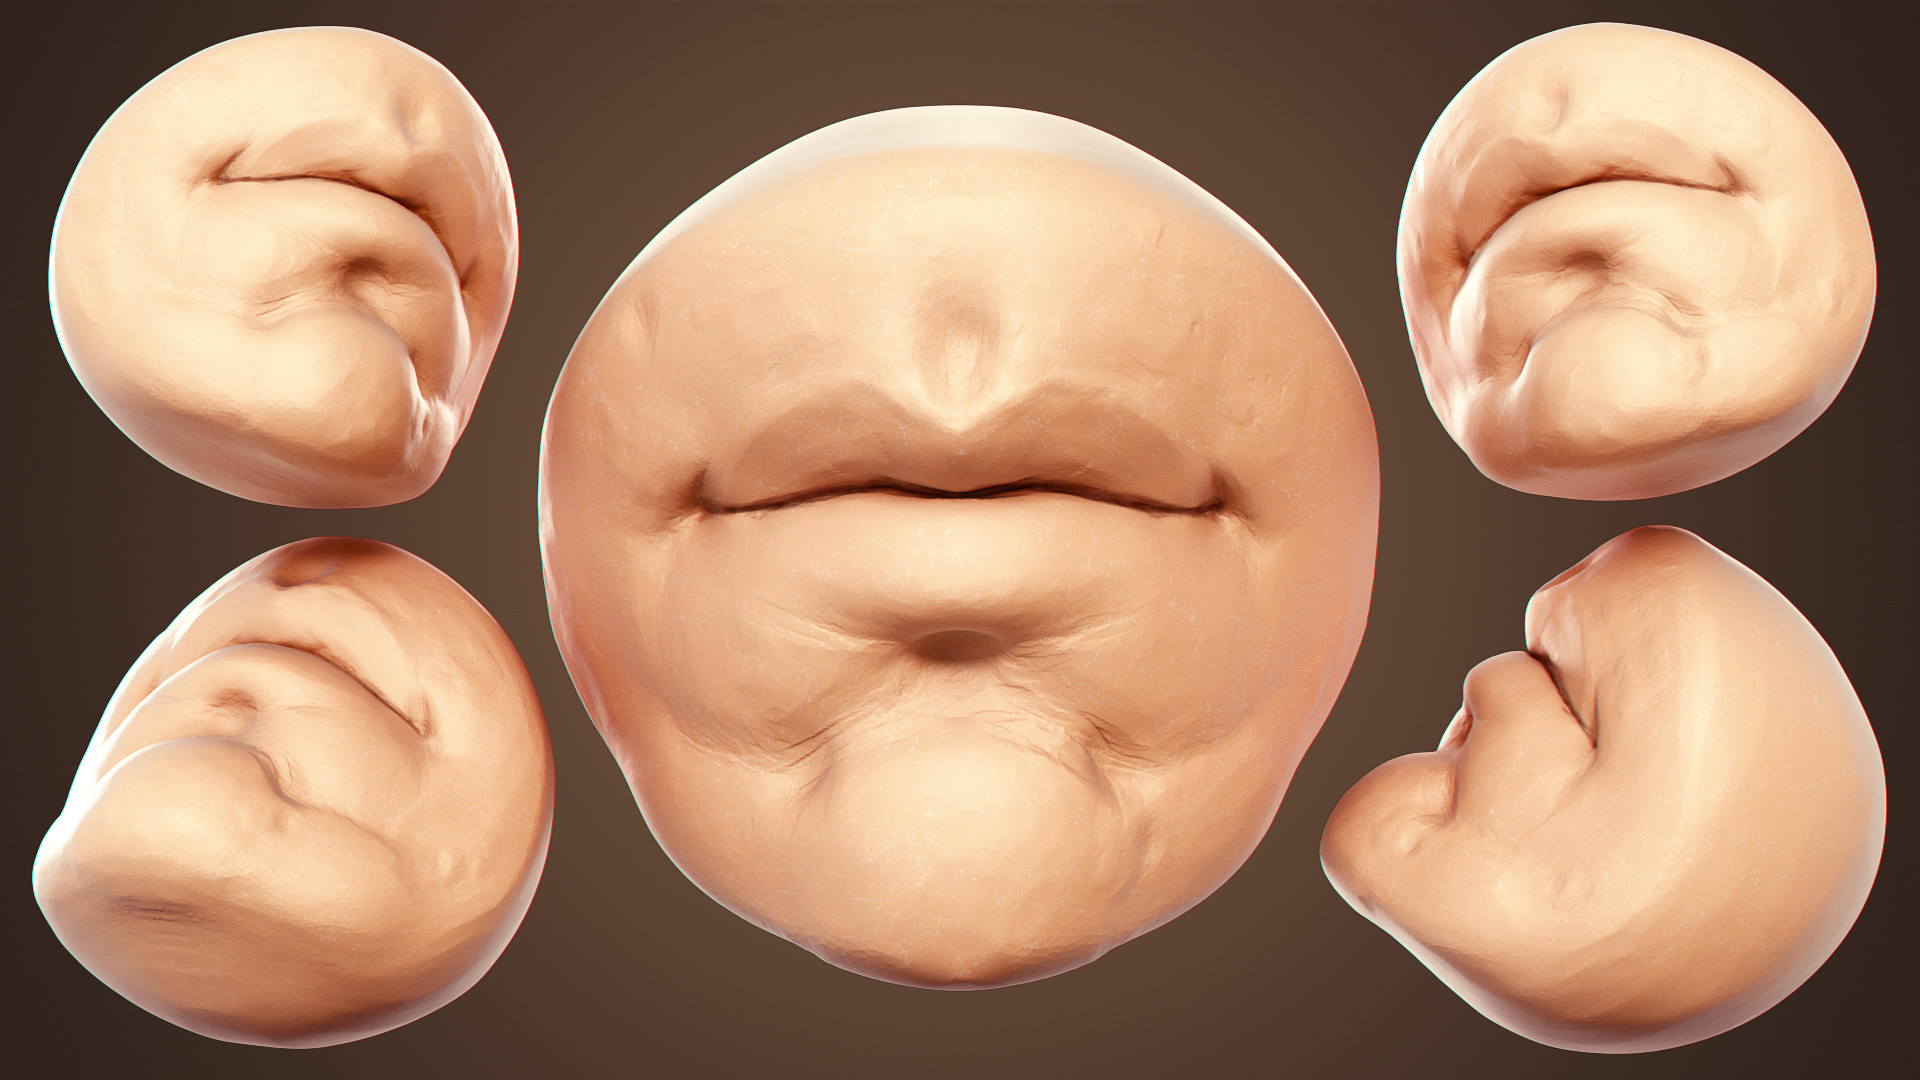 Mr. Mouth - How To Sculpt The Mouth In Blender_BY Yanal Sosak Sculpt Sculpt,Mouth,Blender